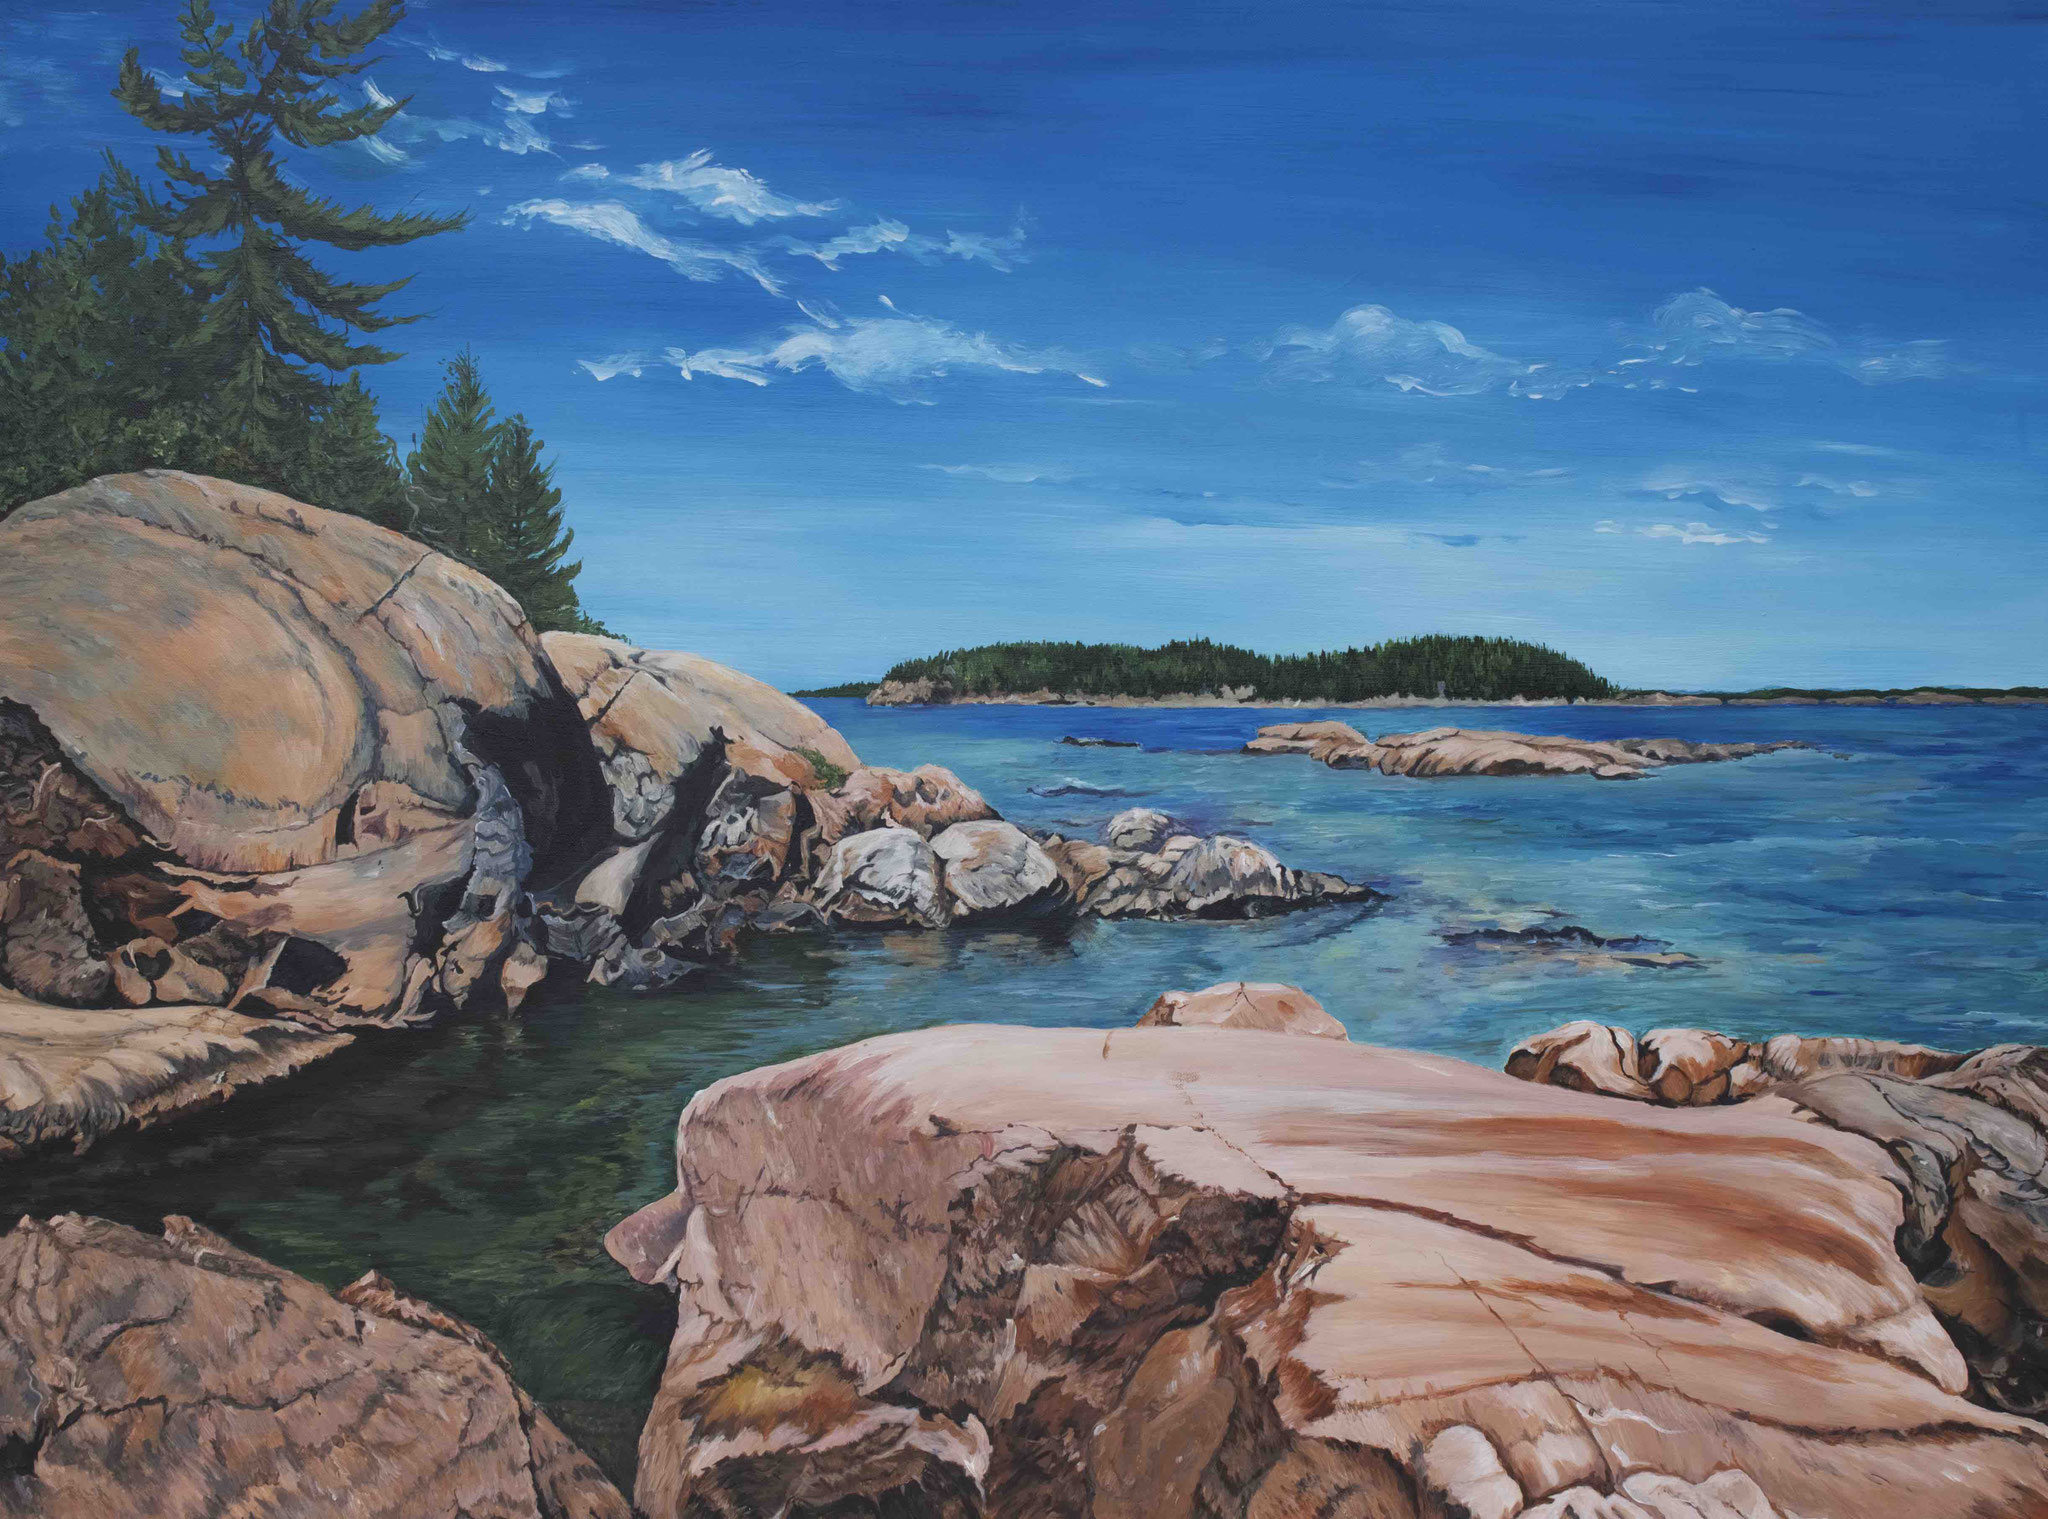 FOR THE LOVE OF GEORGIAN BAY 36 x 48 acrylic by Kathleen Pistor  Ist place winner of People's Choice Award